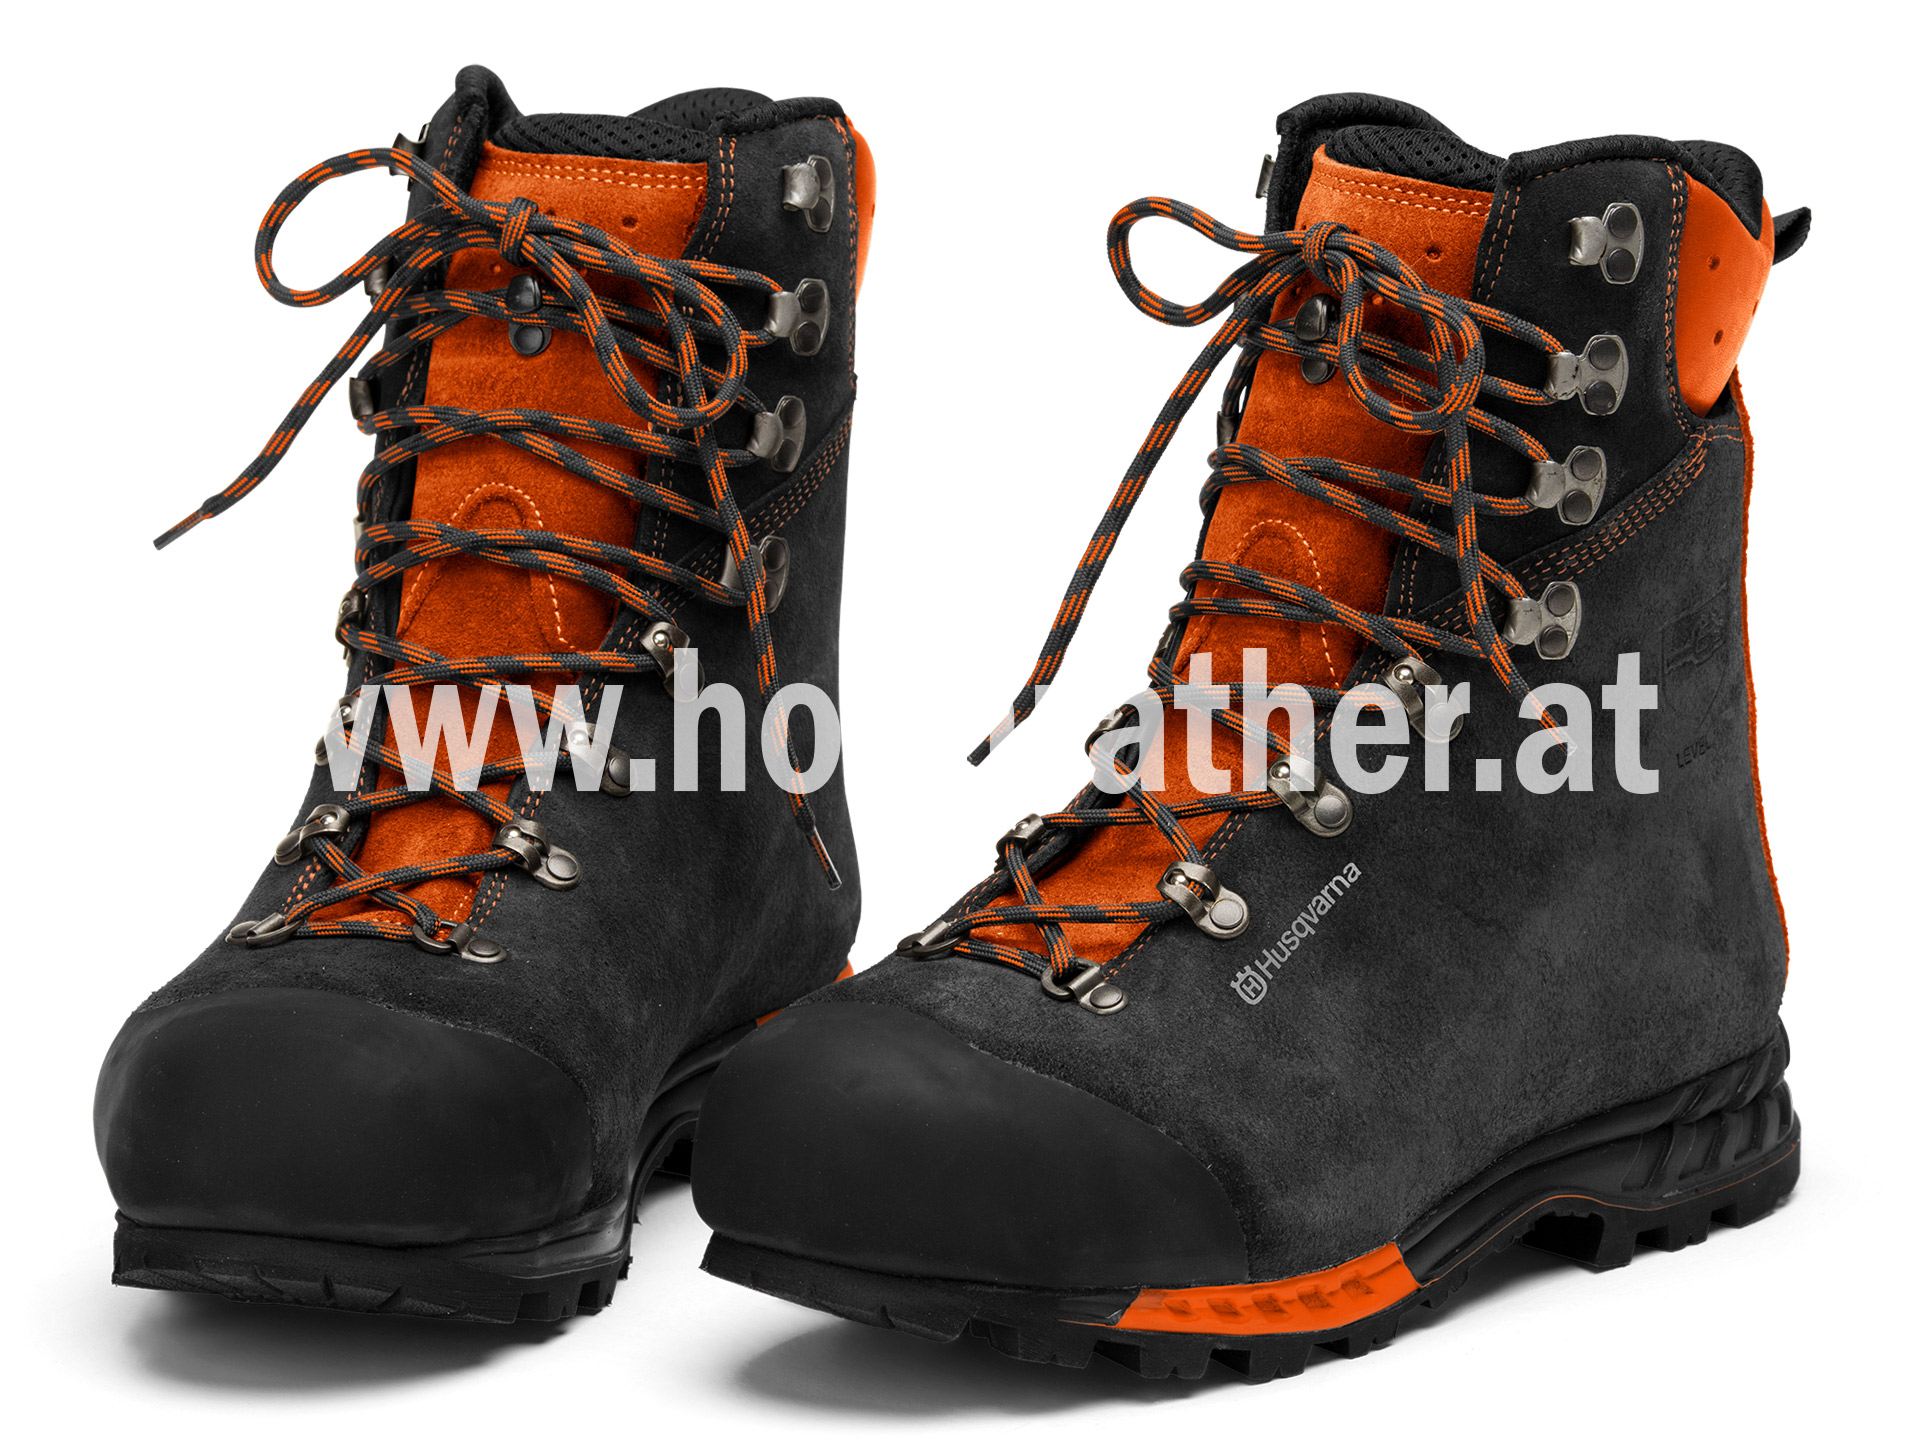 CHAINSAW LEATHER BOOTS F24 40 (595087340) Husqvarna